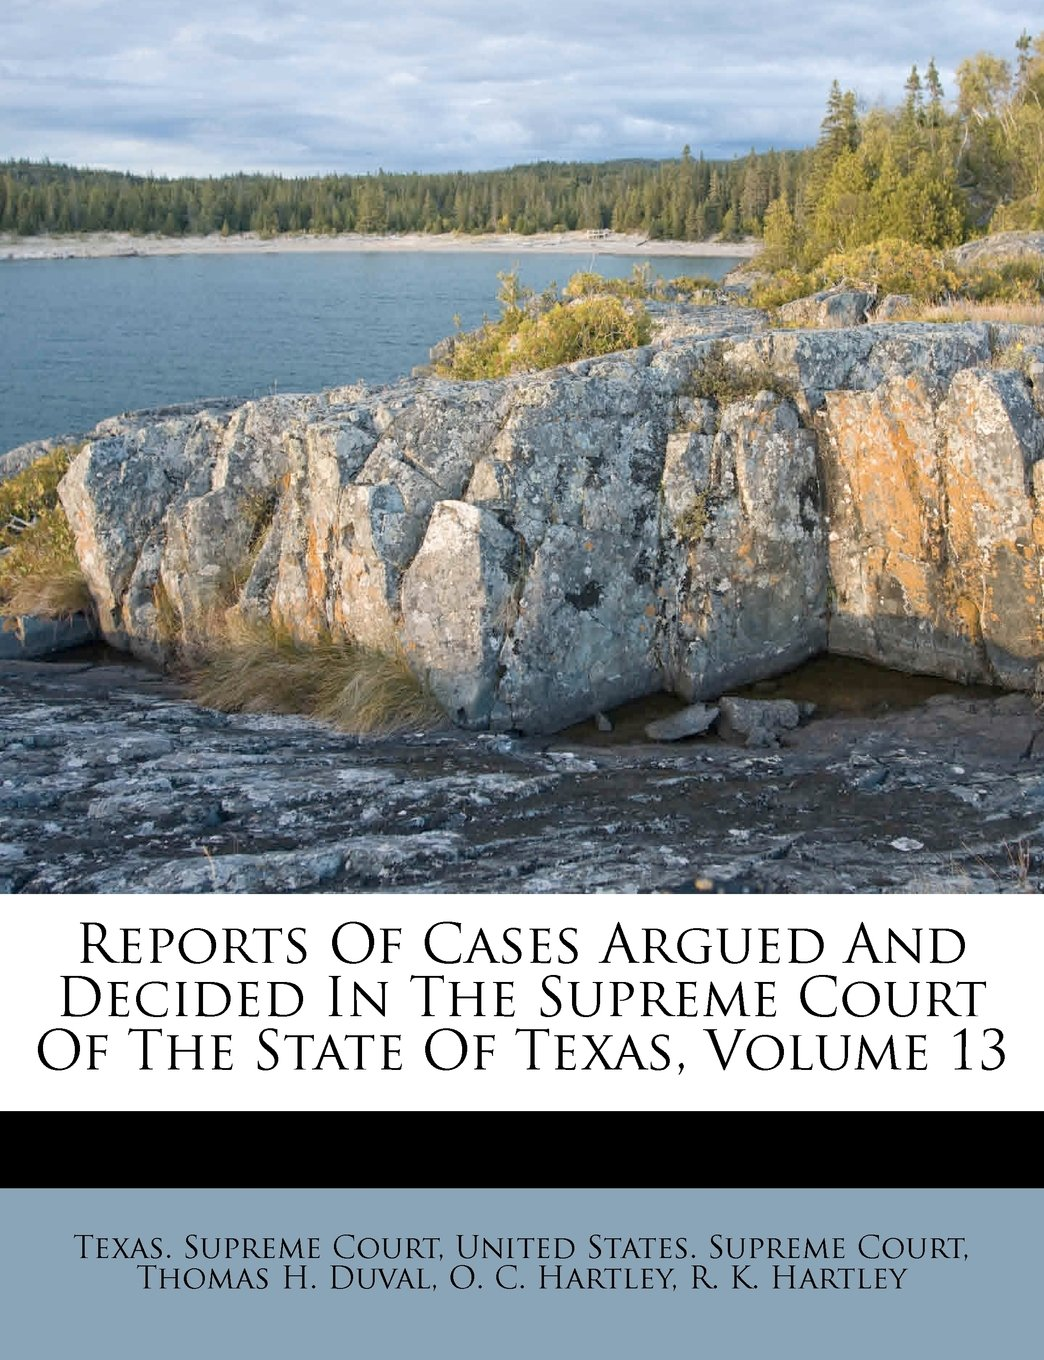 Read Online Reports Of Cases Argued And Decided In The Supreme Court Of The State Of Texas, Volume 13 ebook